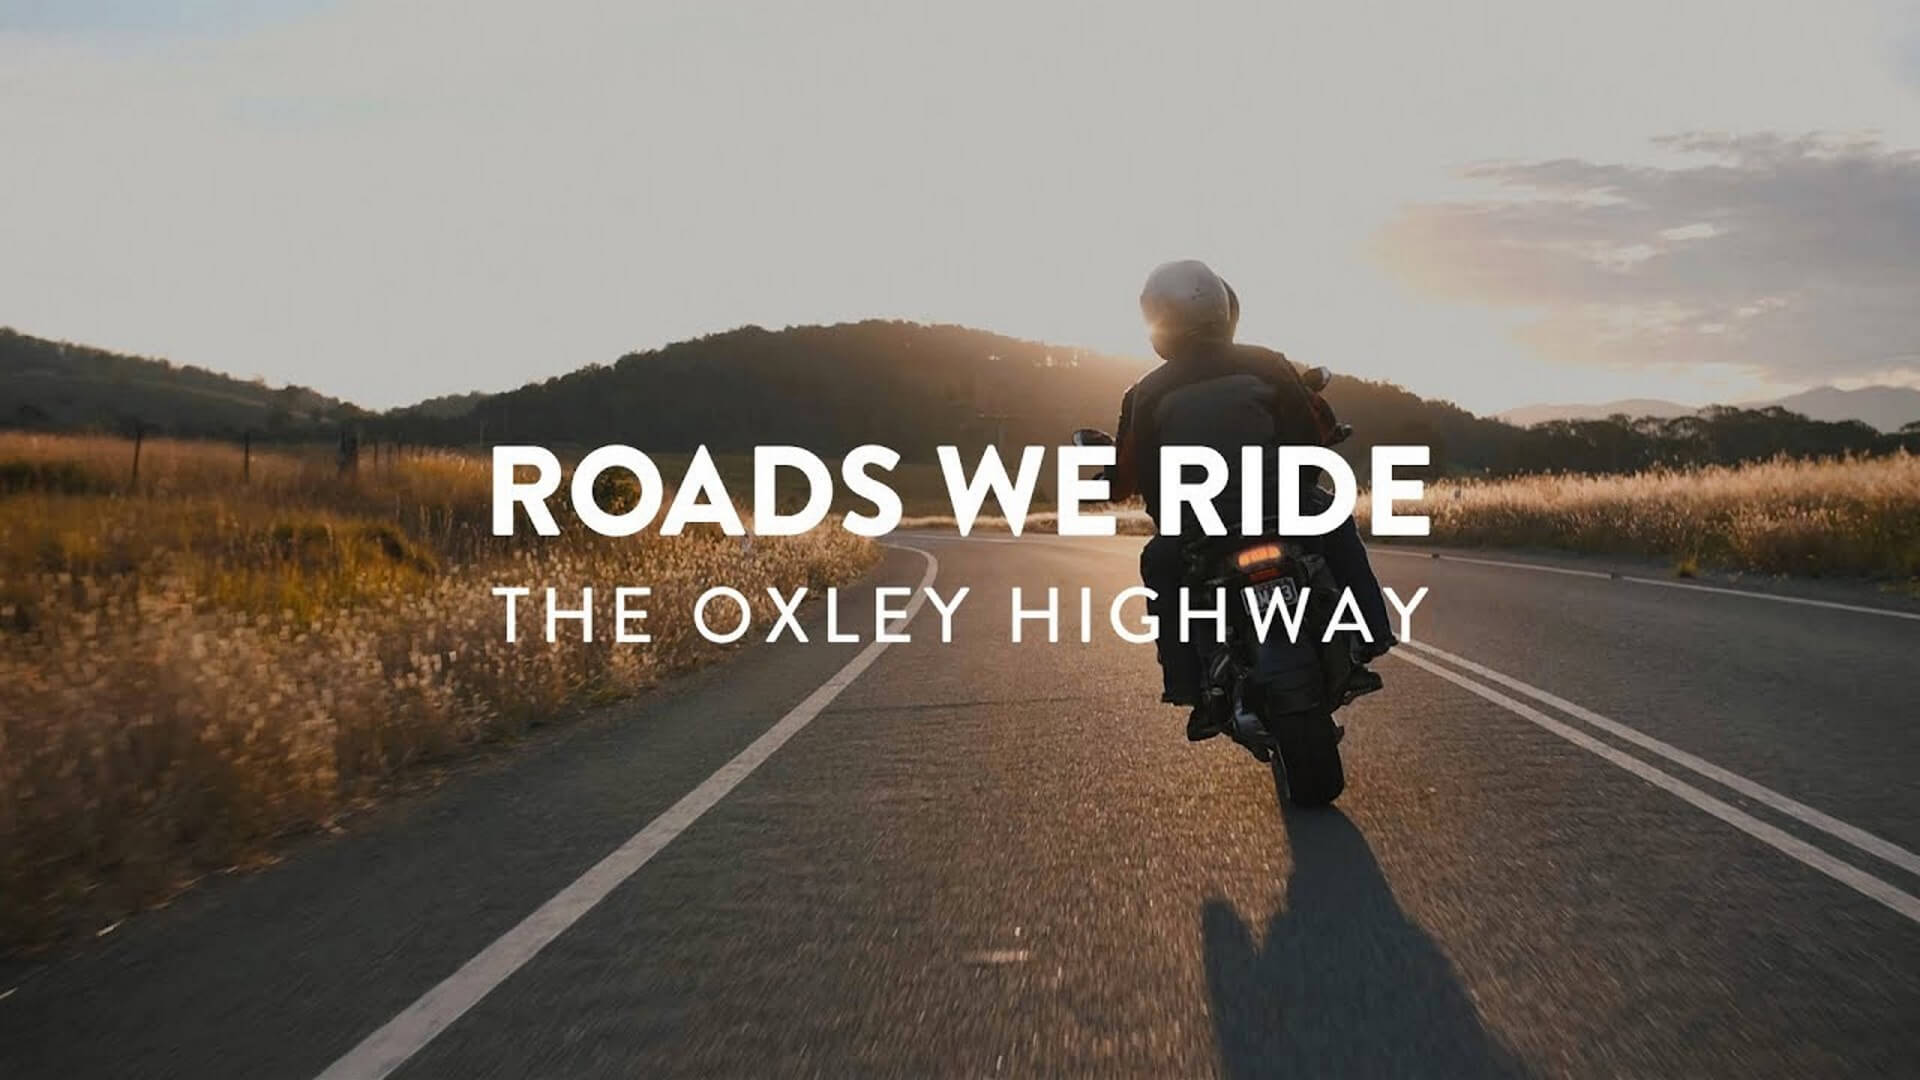 Roads We Ride The Oxley Highway